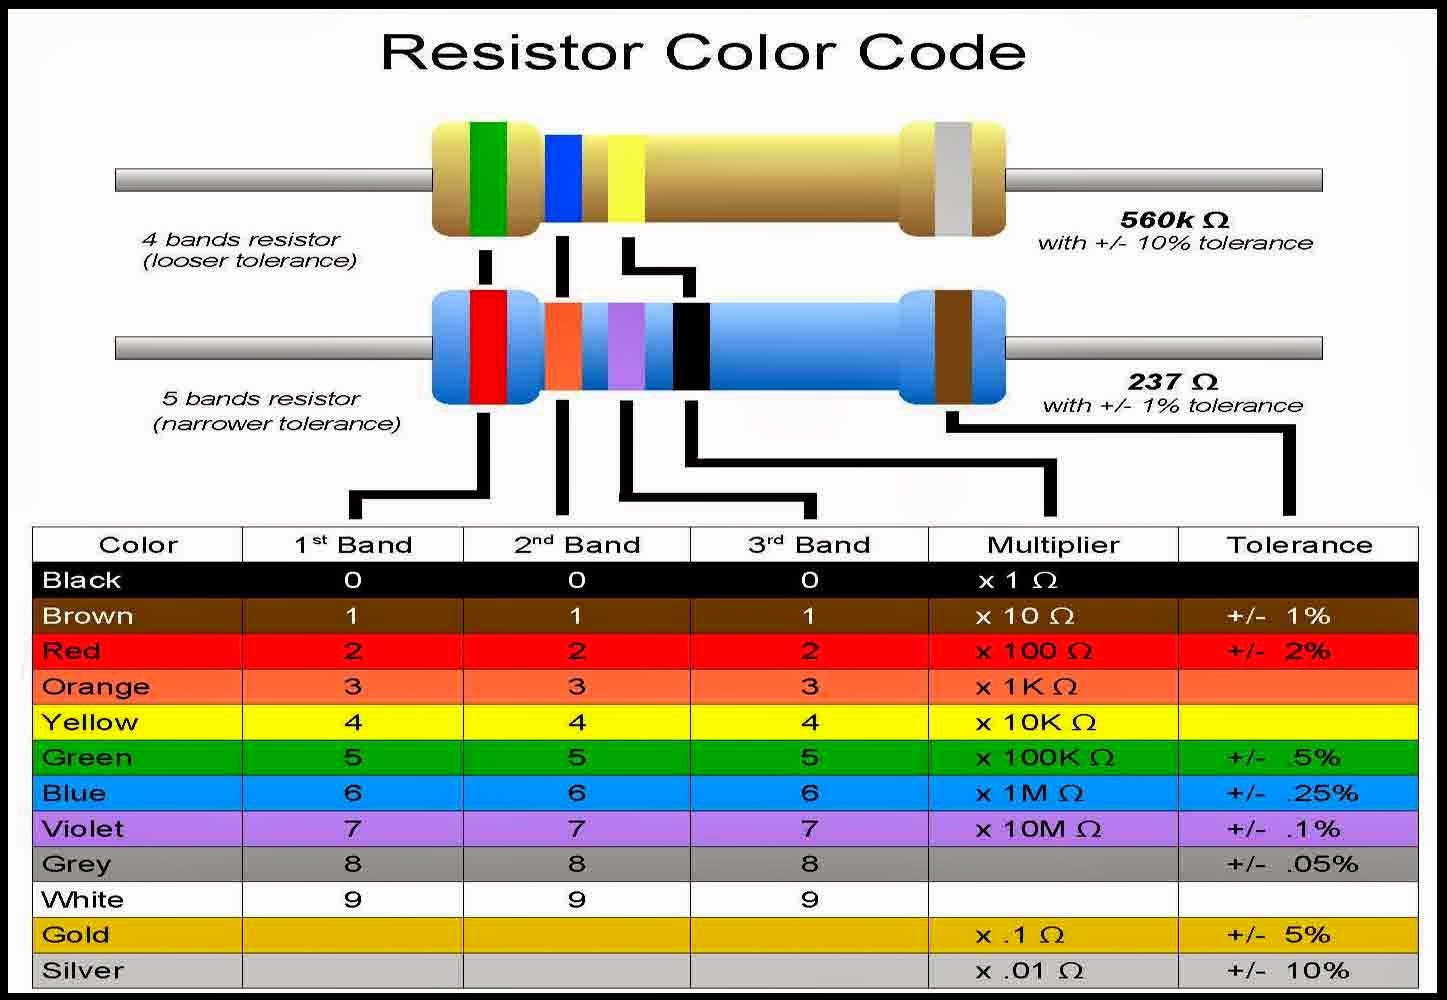 Resistance color code